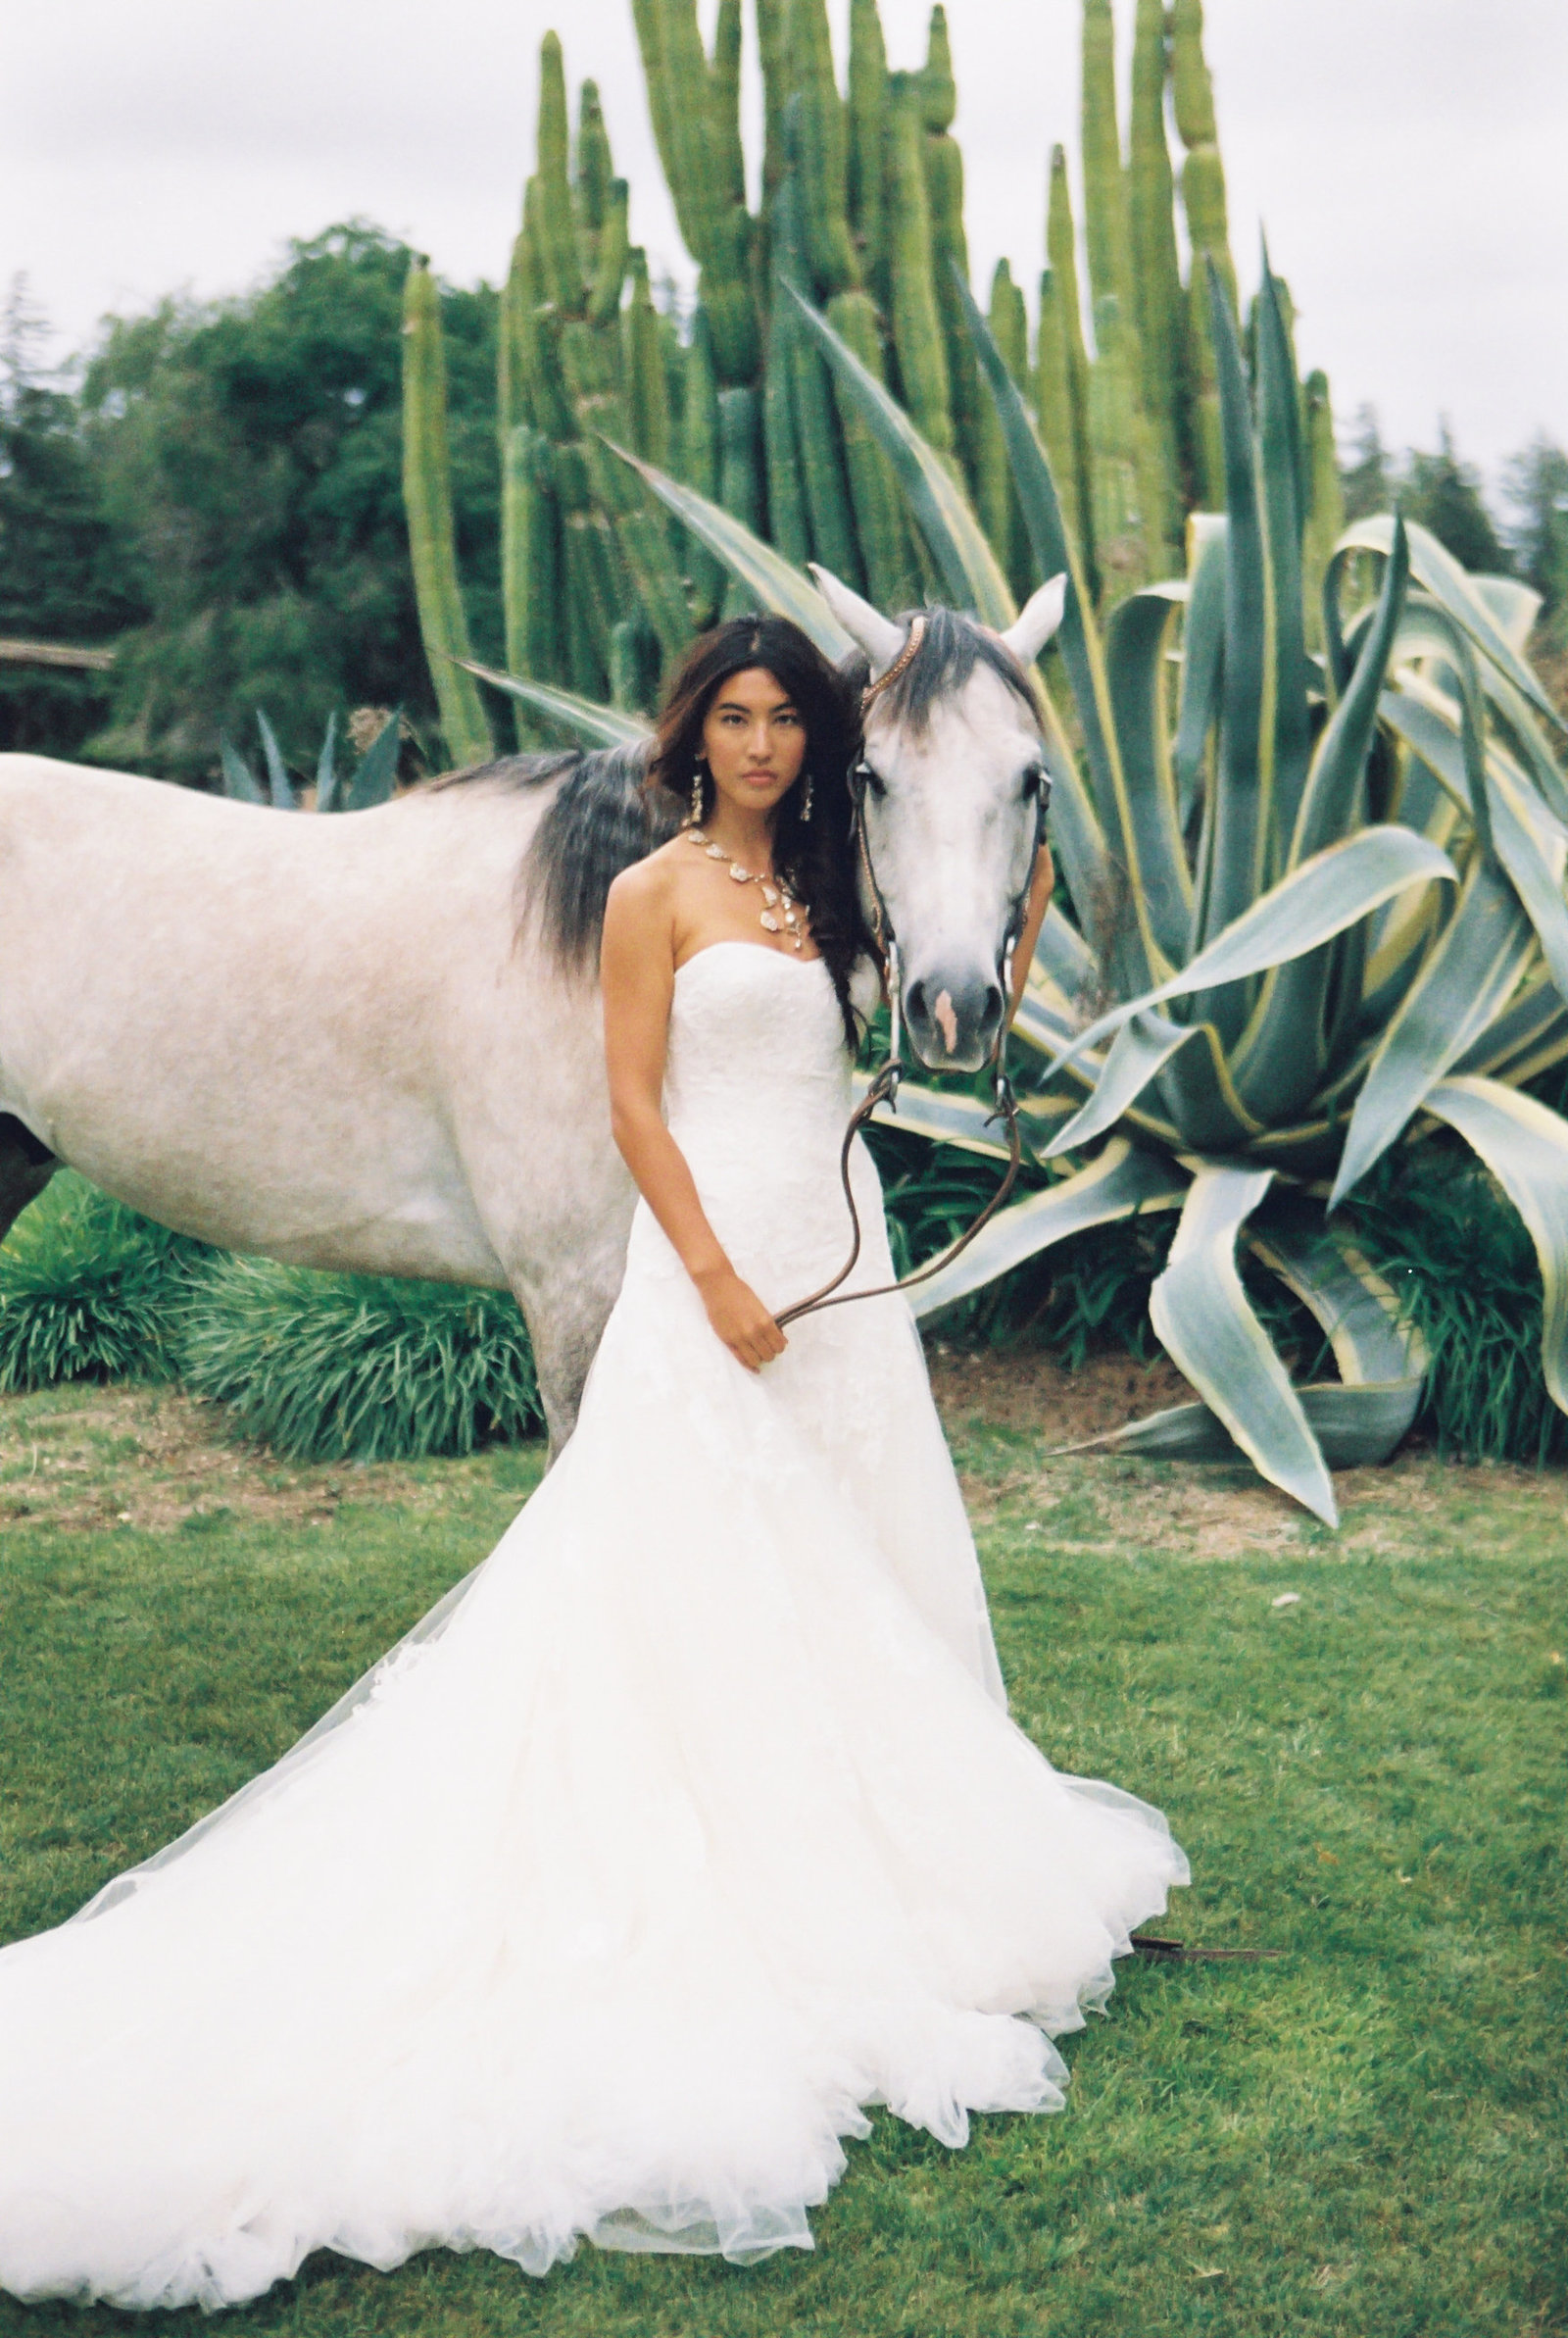 Christianne_taylor_Weddings_ranch_equestrian_quarterly_samples-2